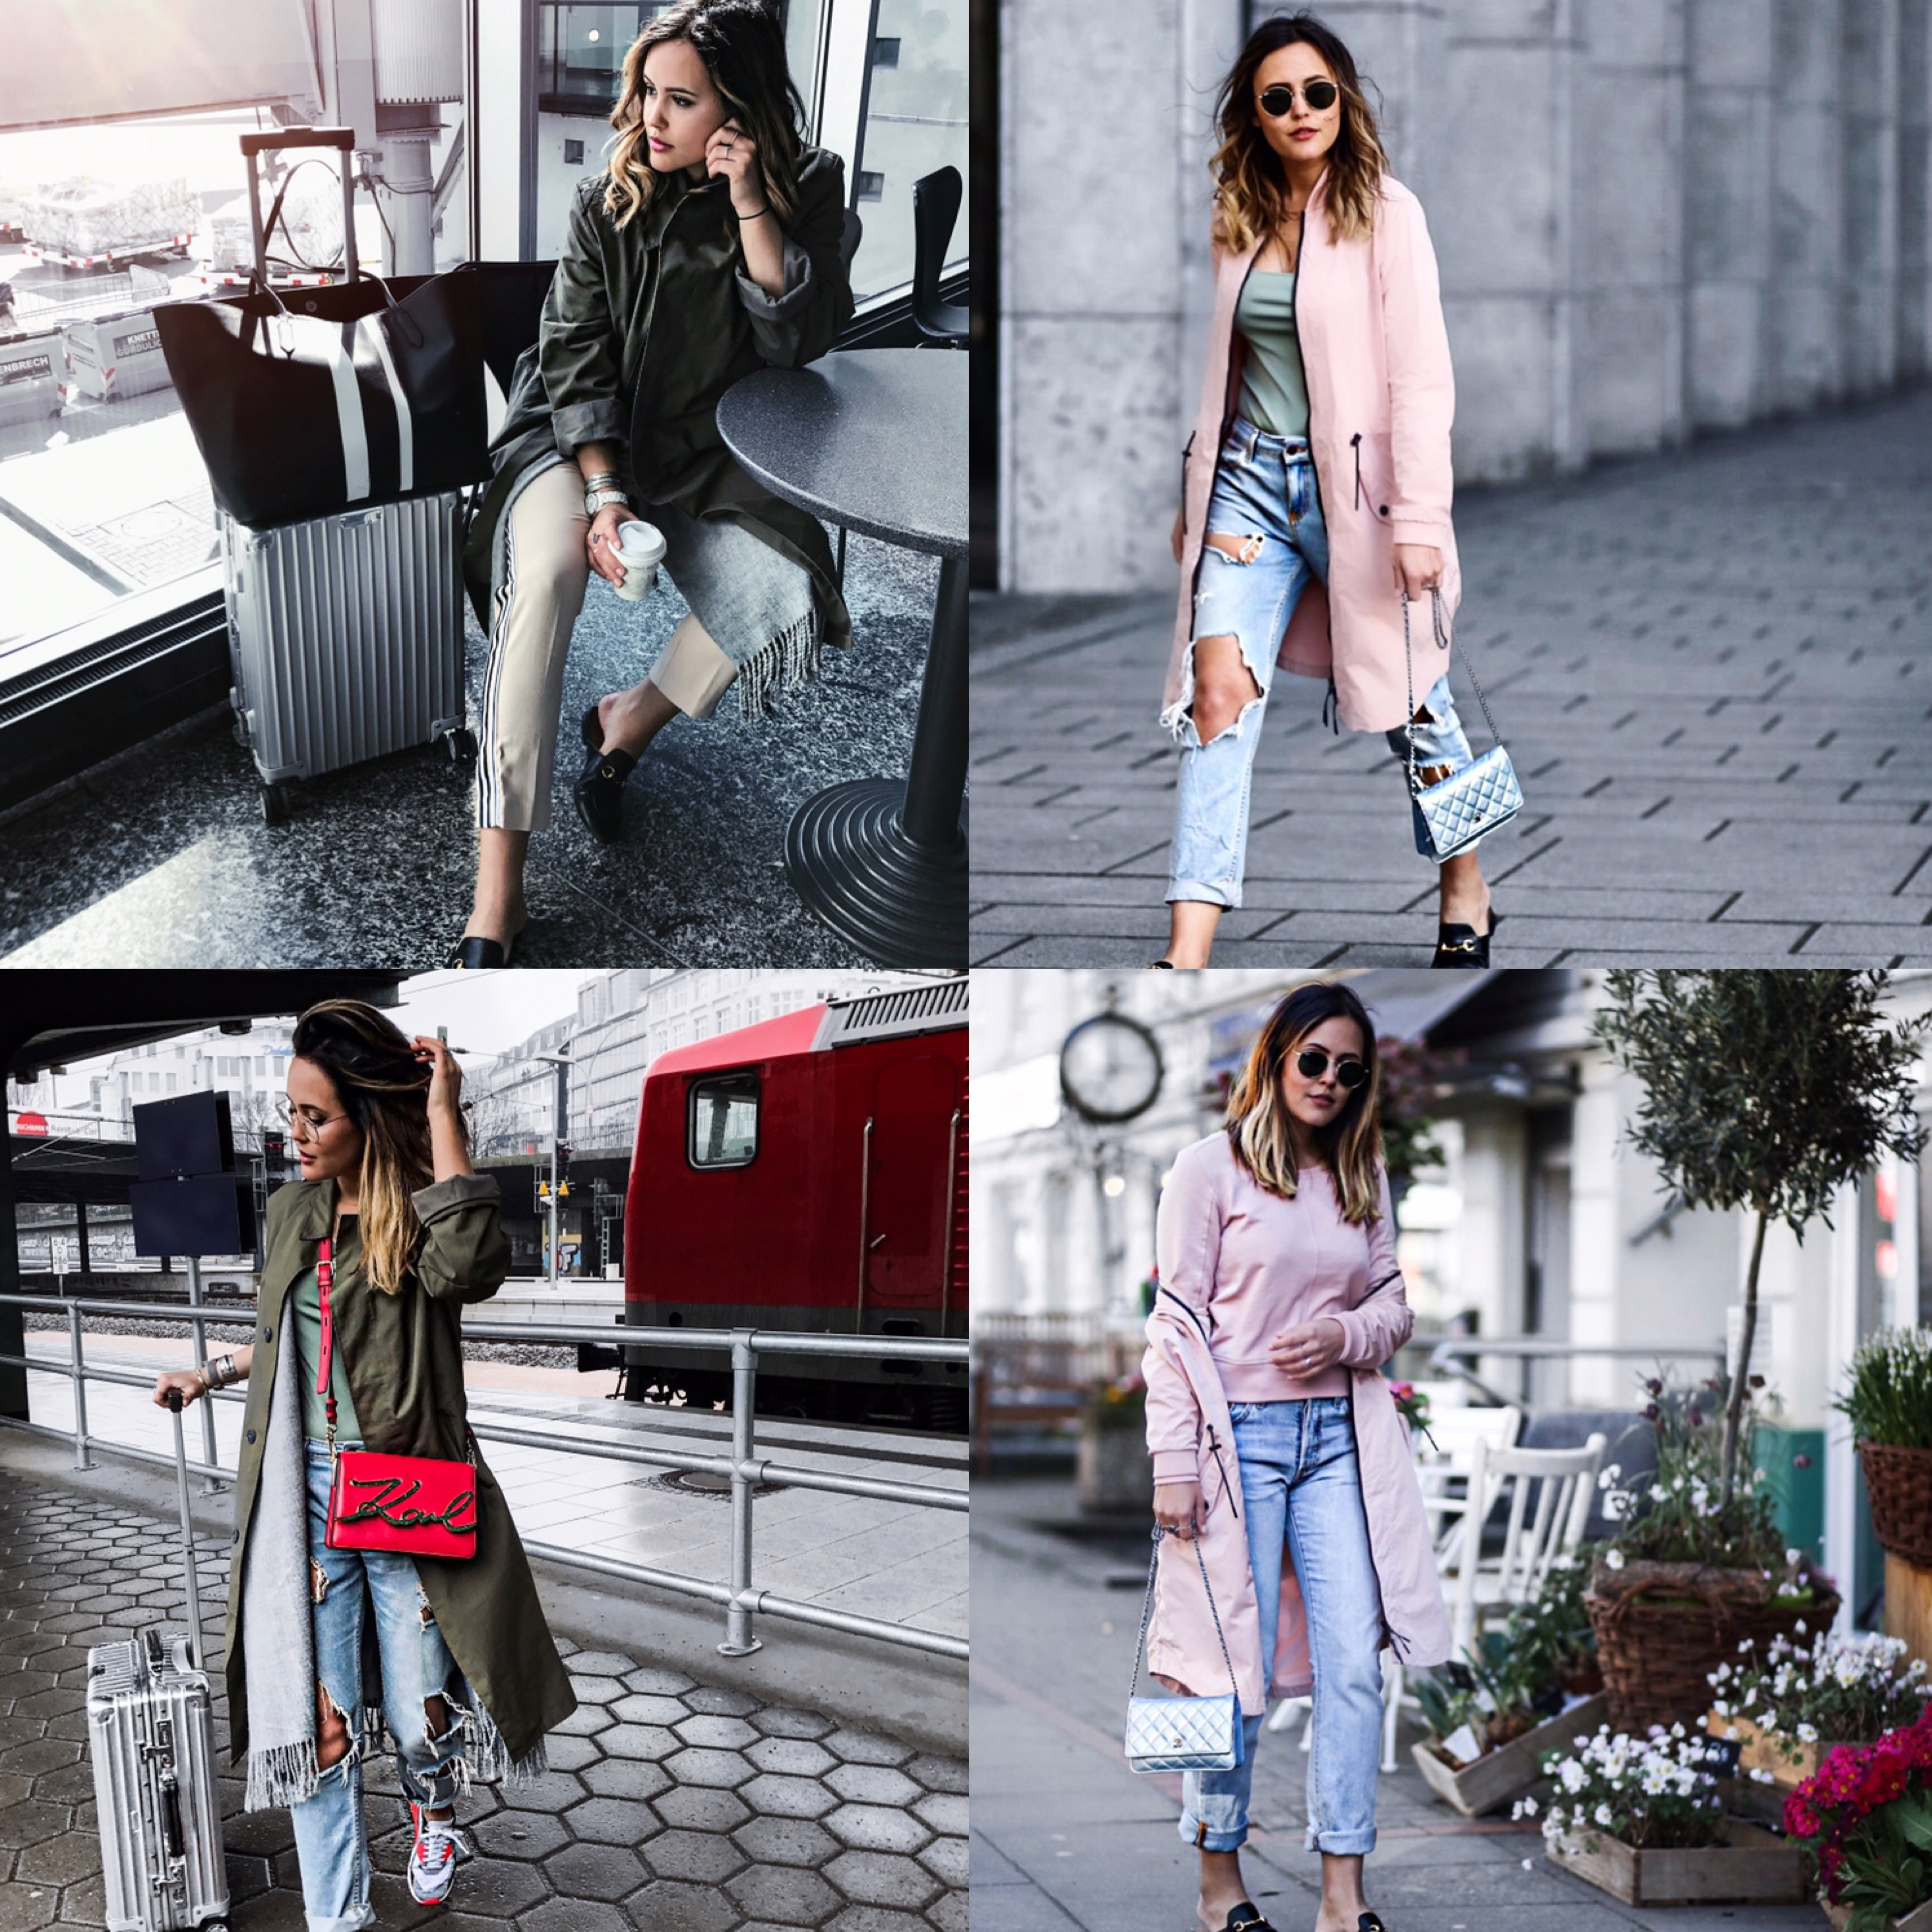 Outfits, Travellook, Streetstyle, Casual